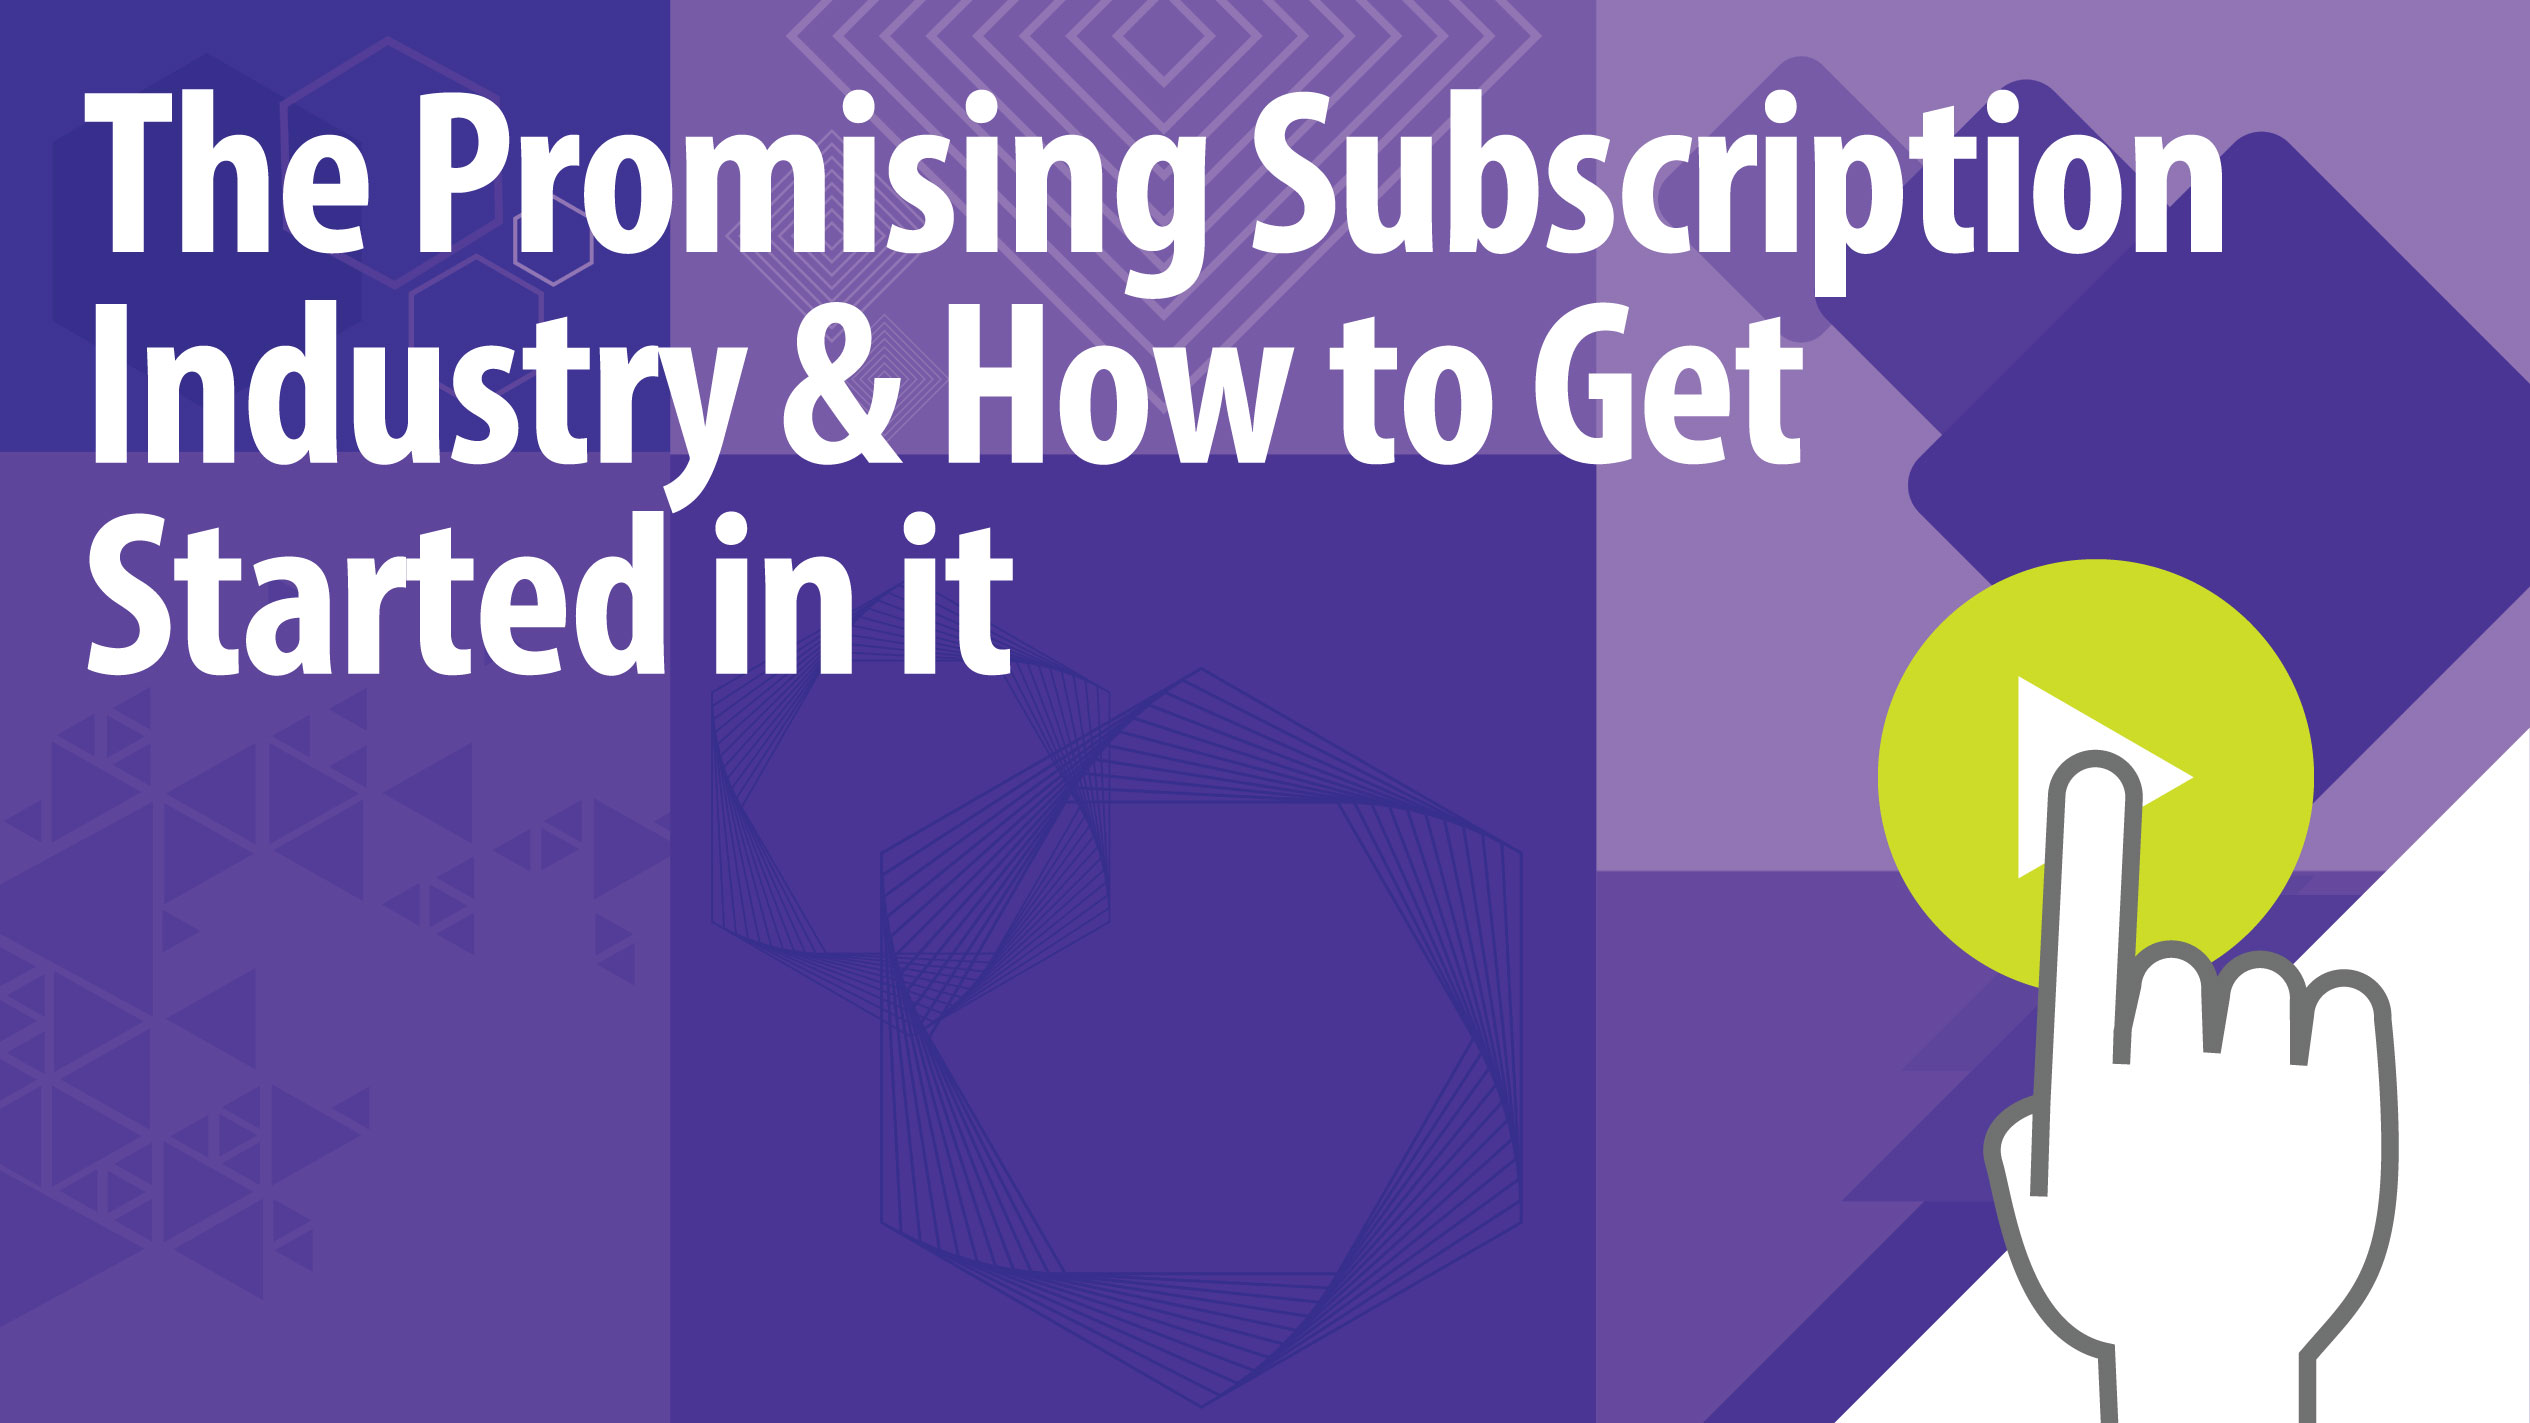 The Promising Subscription Industry & How to Get Started In It